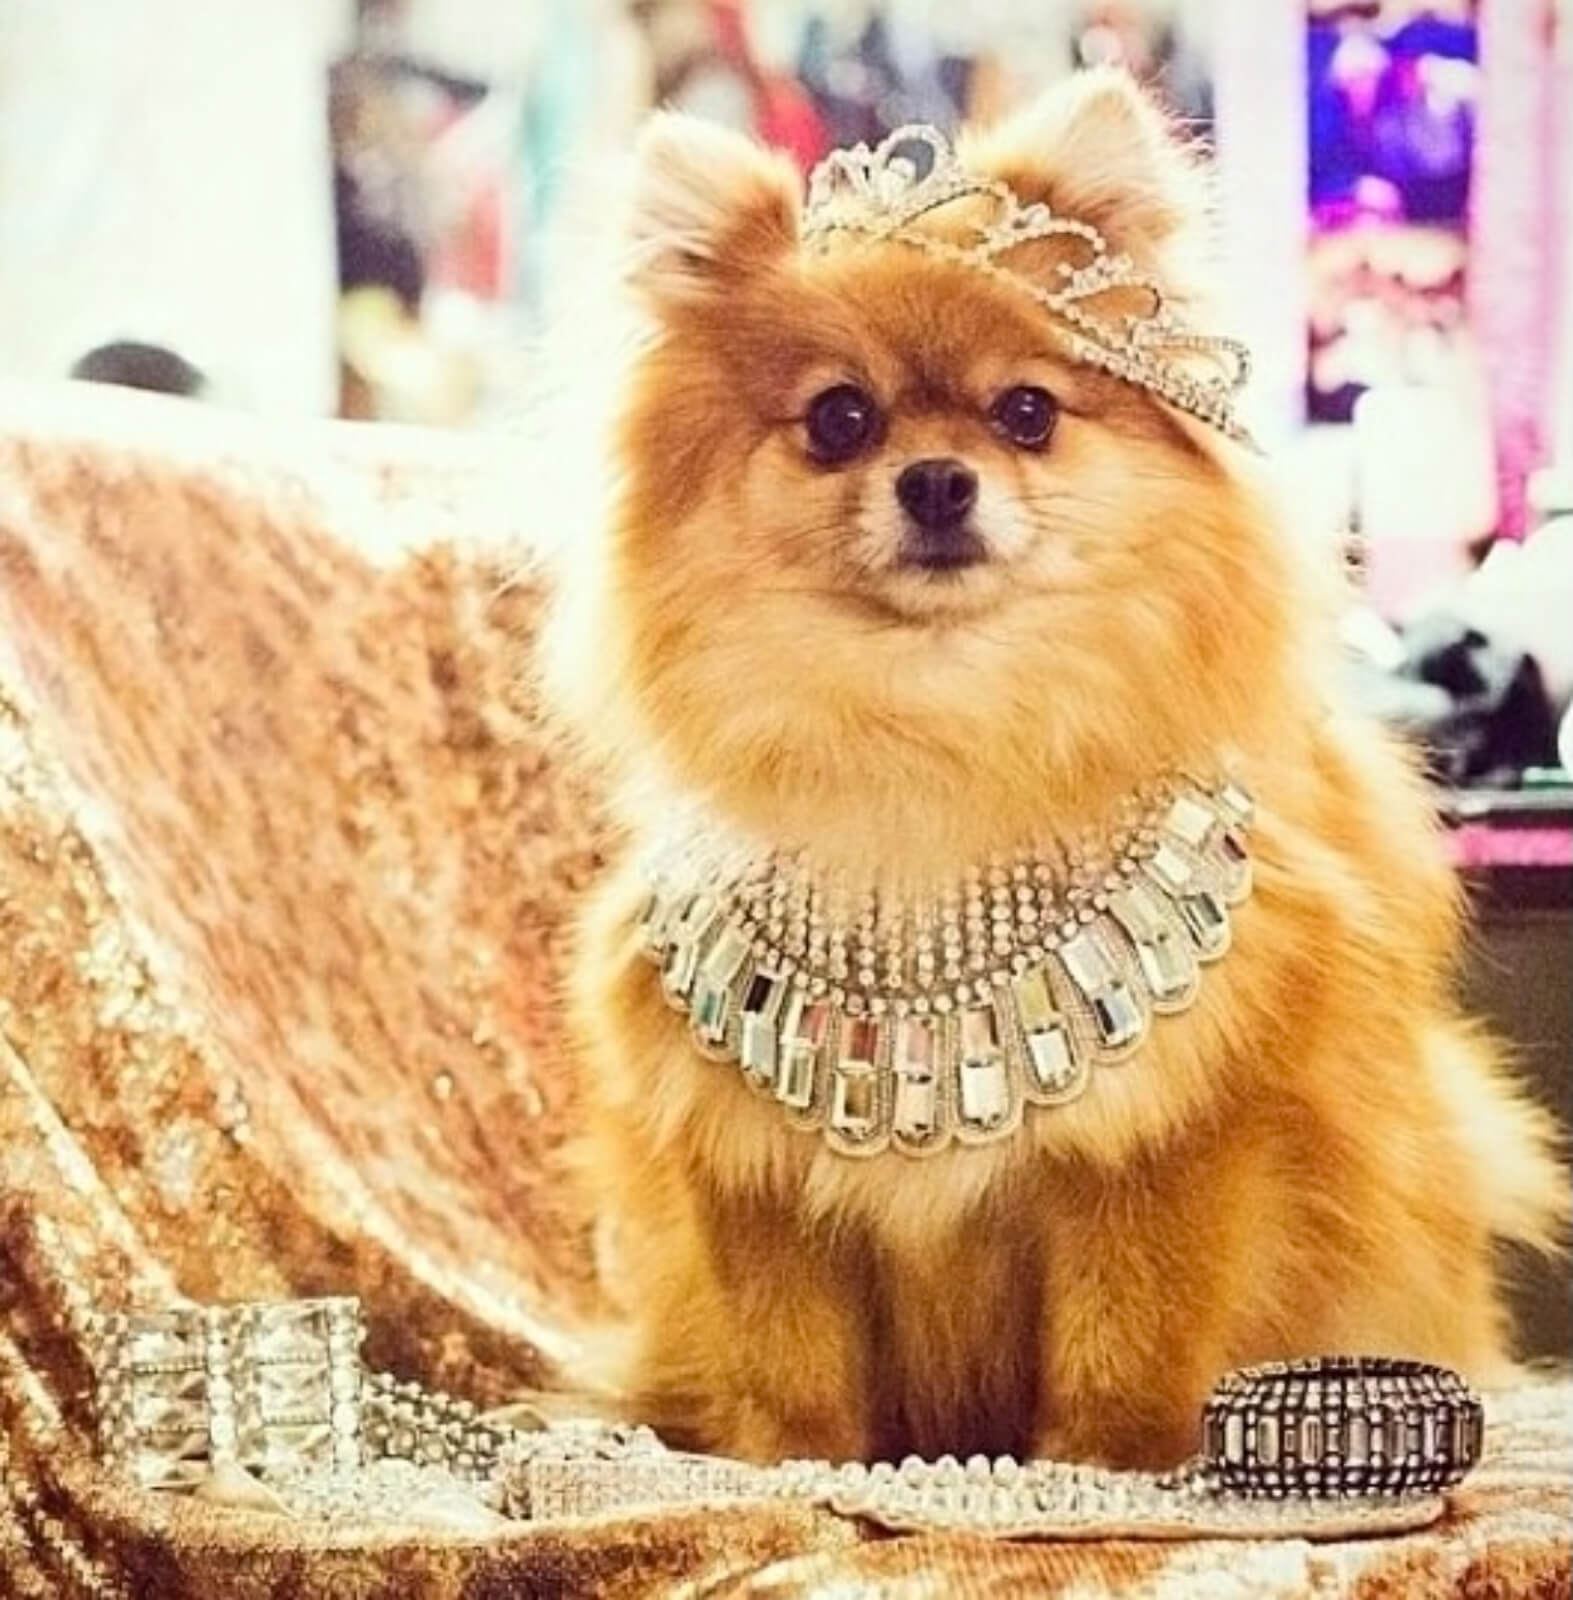 A small Pomeranian dog wearing a crown and large jewel necklace while sitting on golden fabric.